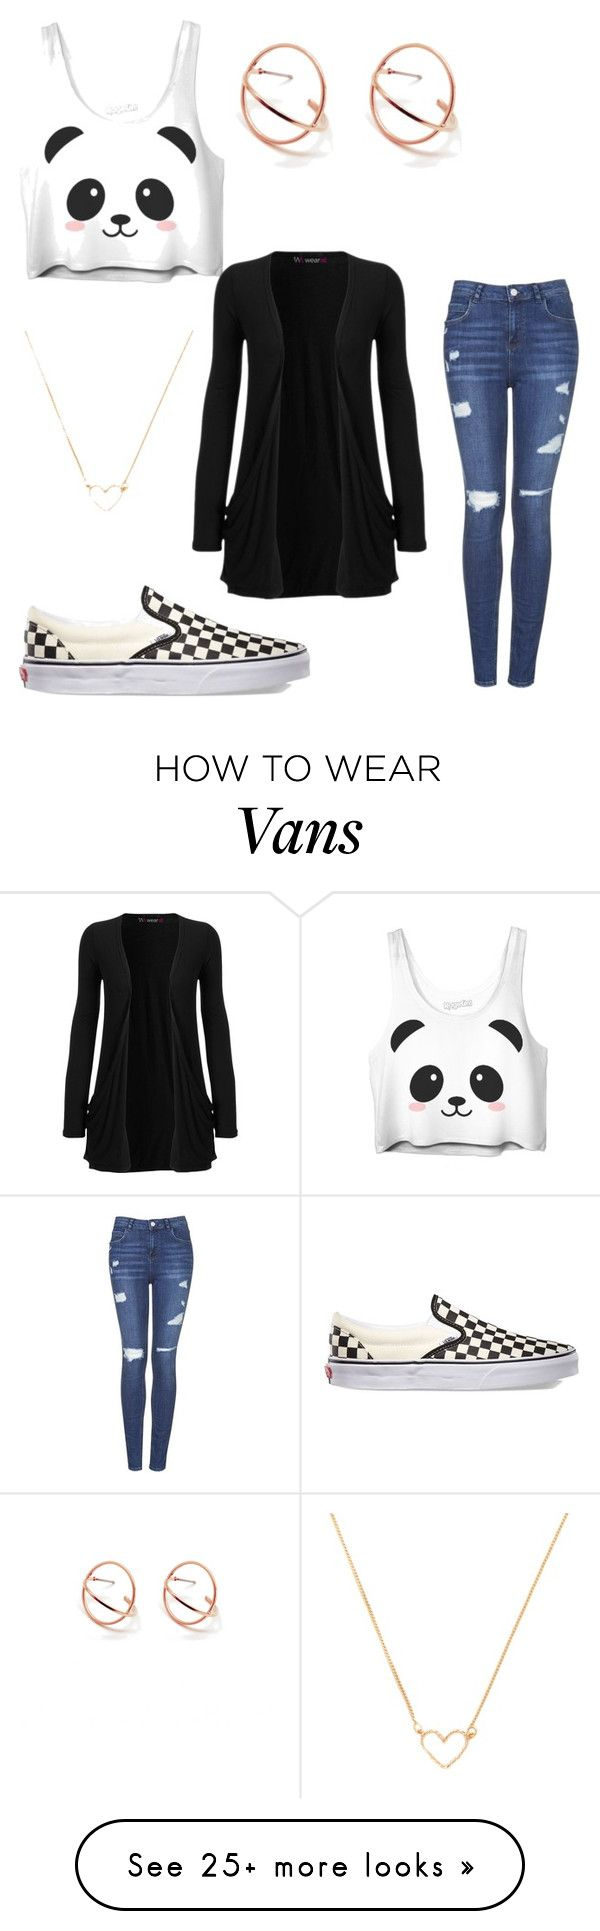 """Untitled #554"" by sadia-nasrallah on Polyvore featuring Topshop, Vans, Forever 21 and WearAll"